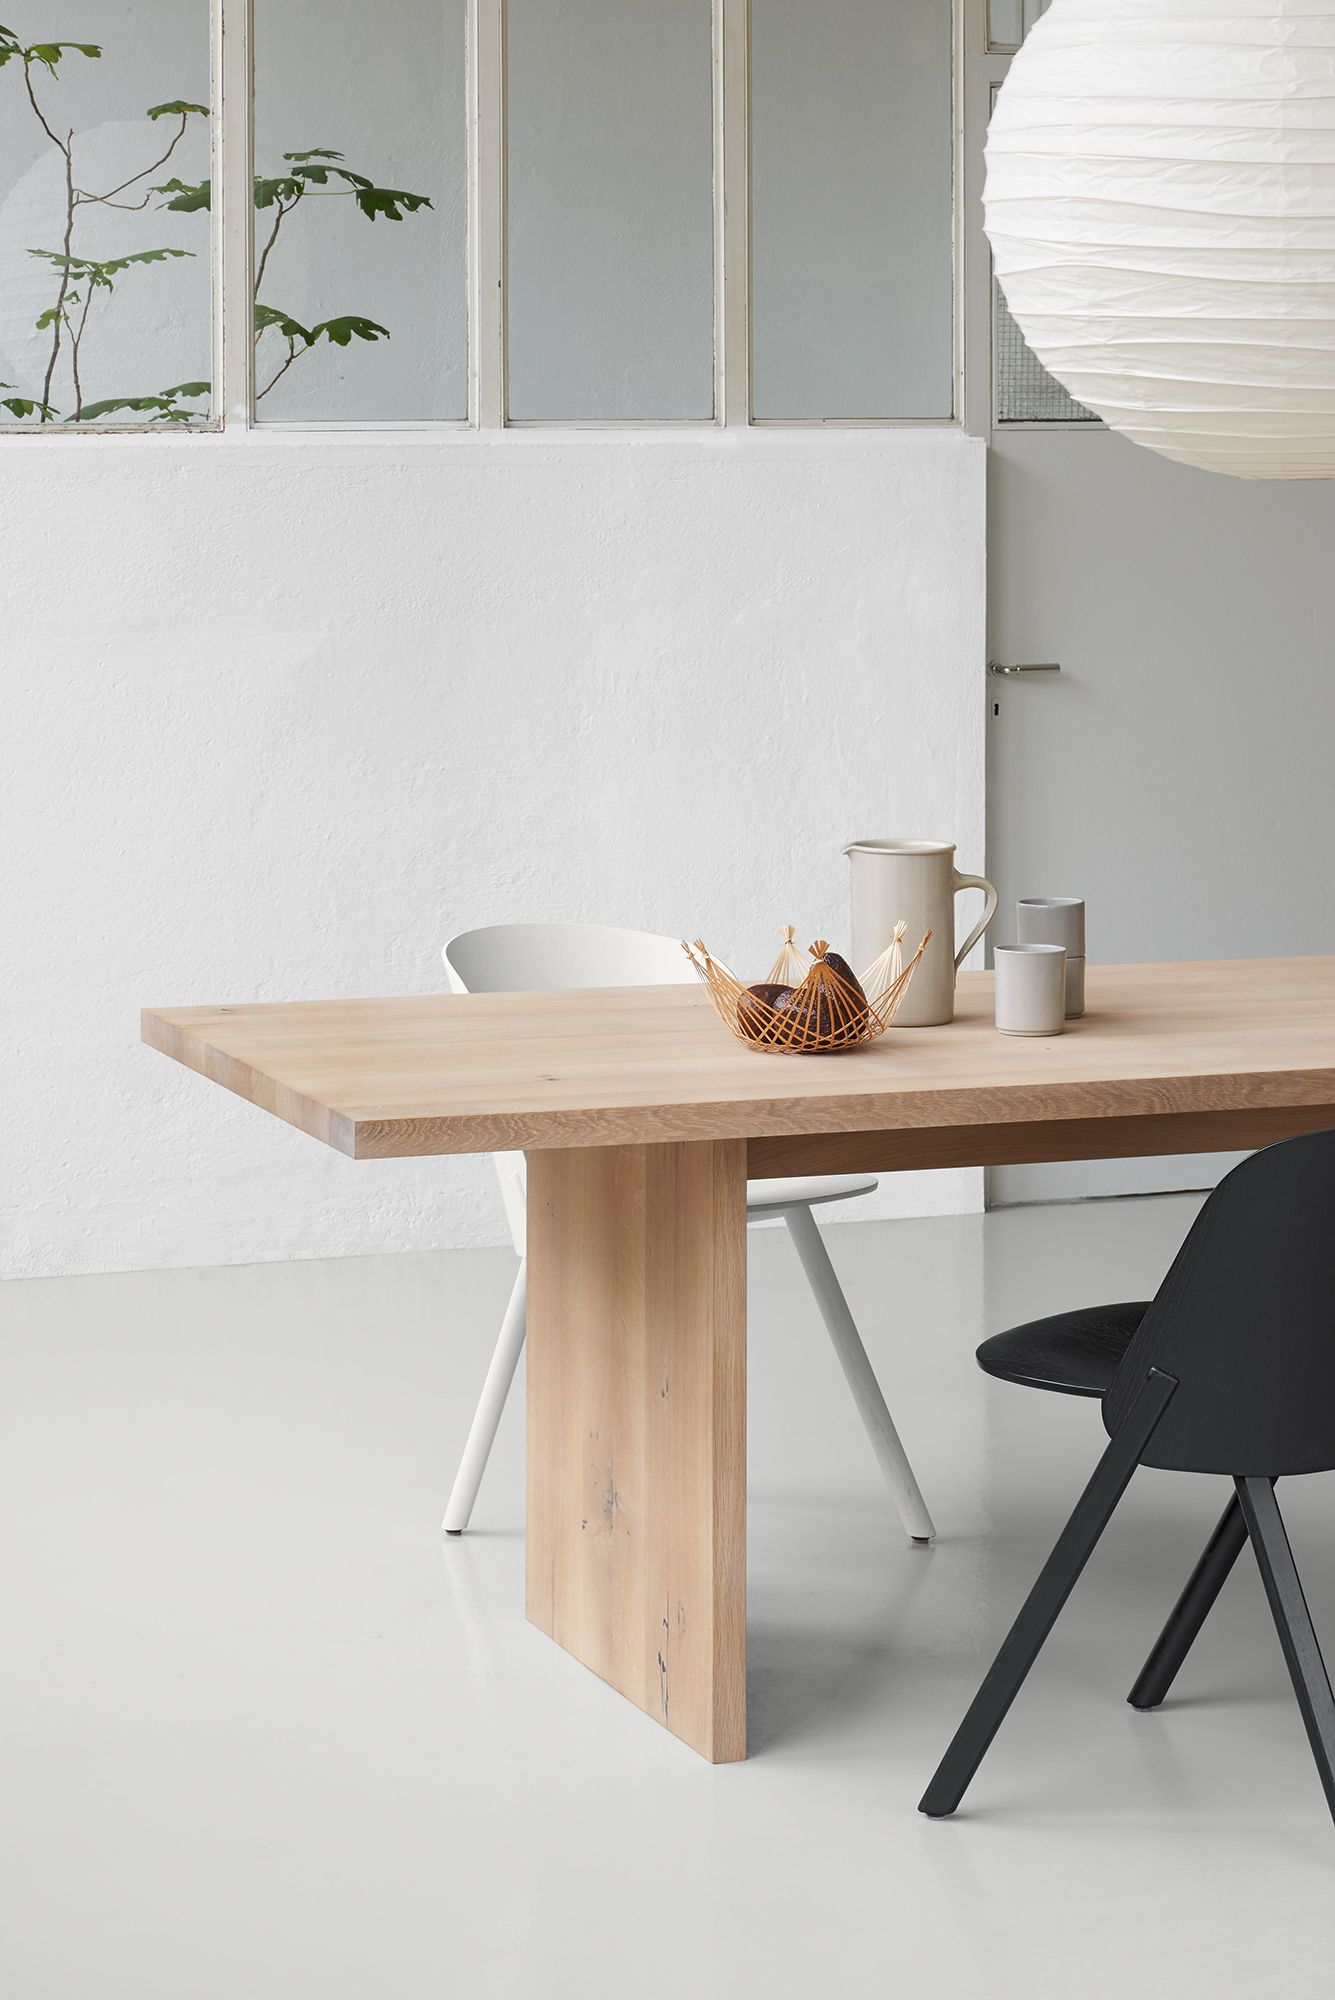 Ashida Oval Table Dining Table Oak Dining Table Japanese Dining Table